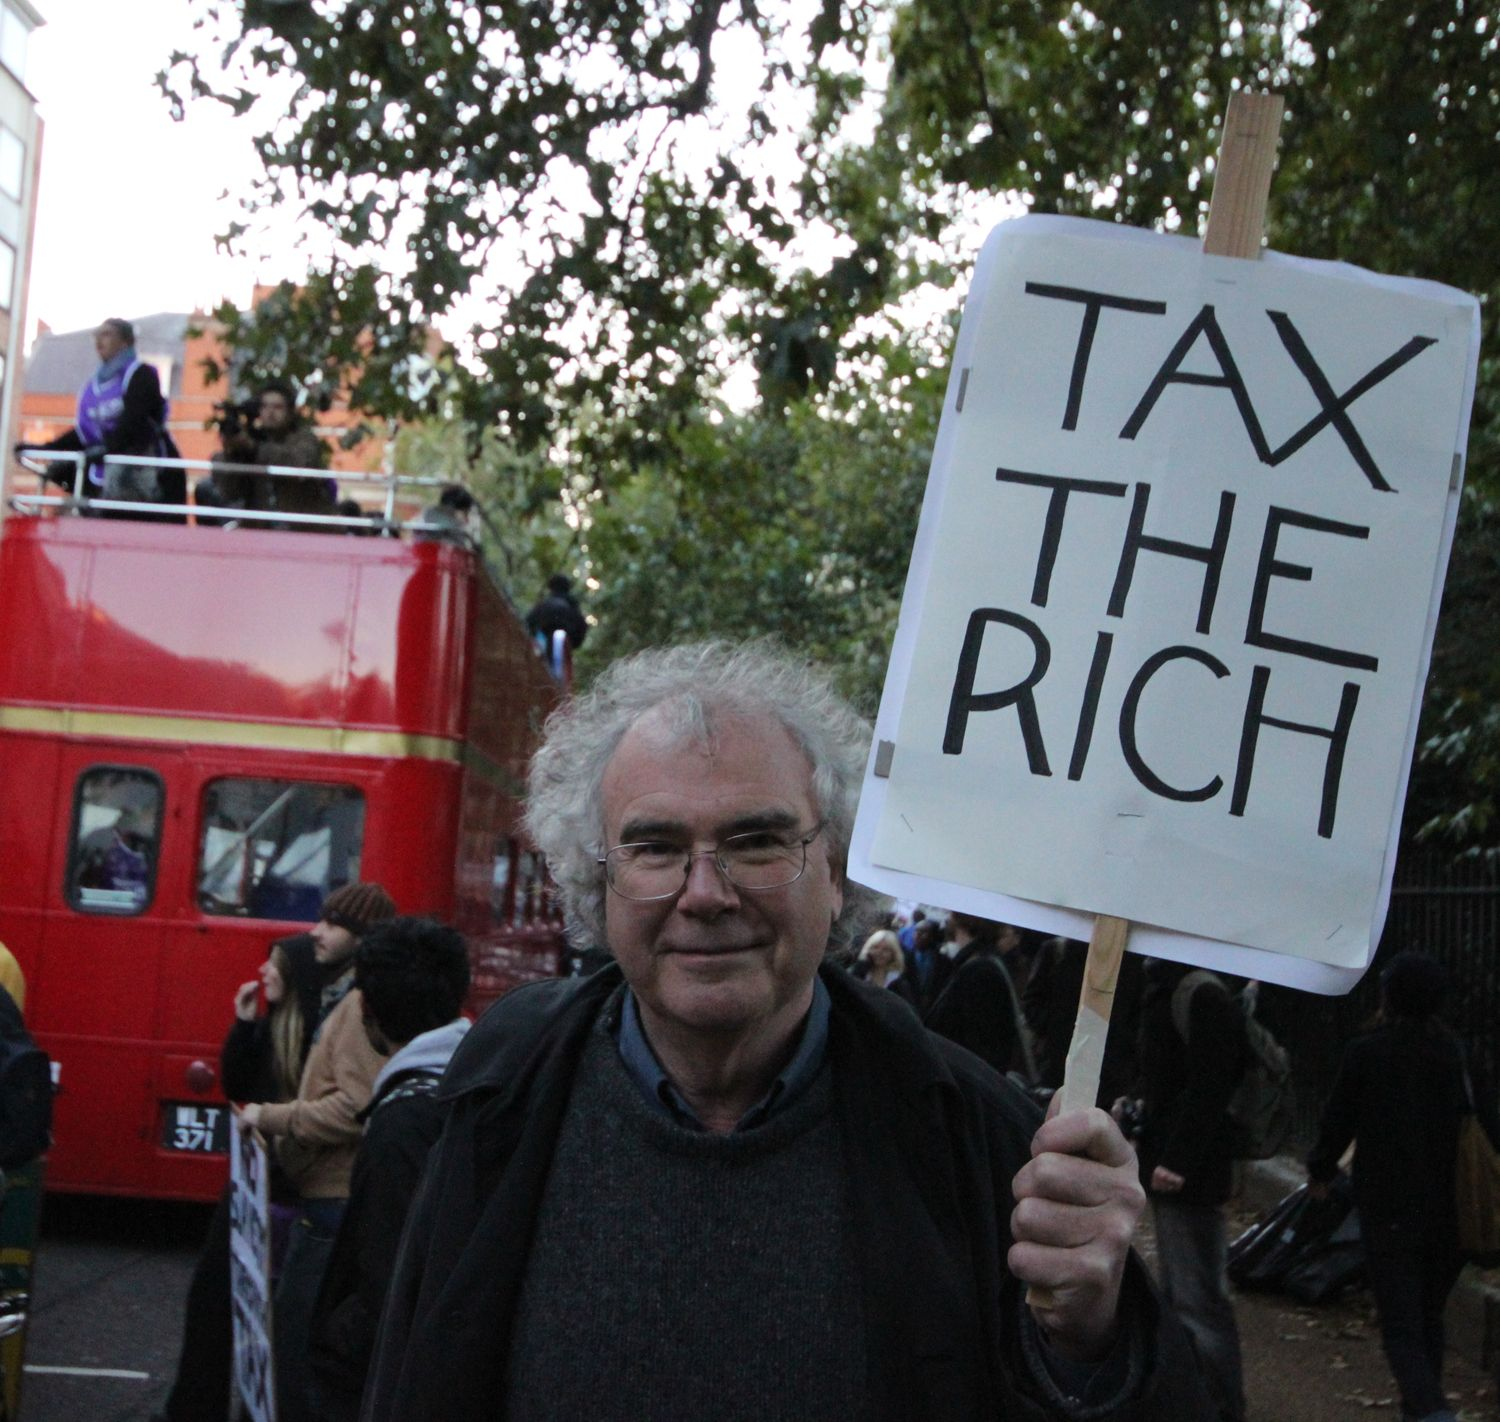 2. Tax The Rich To Help The Middle Class